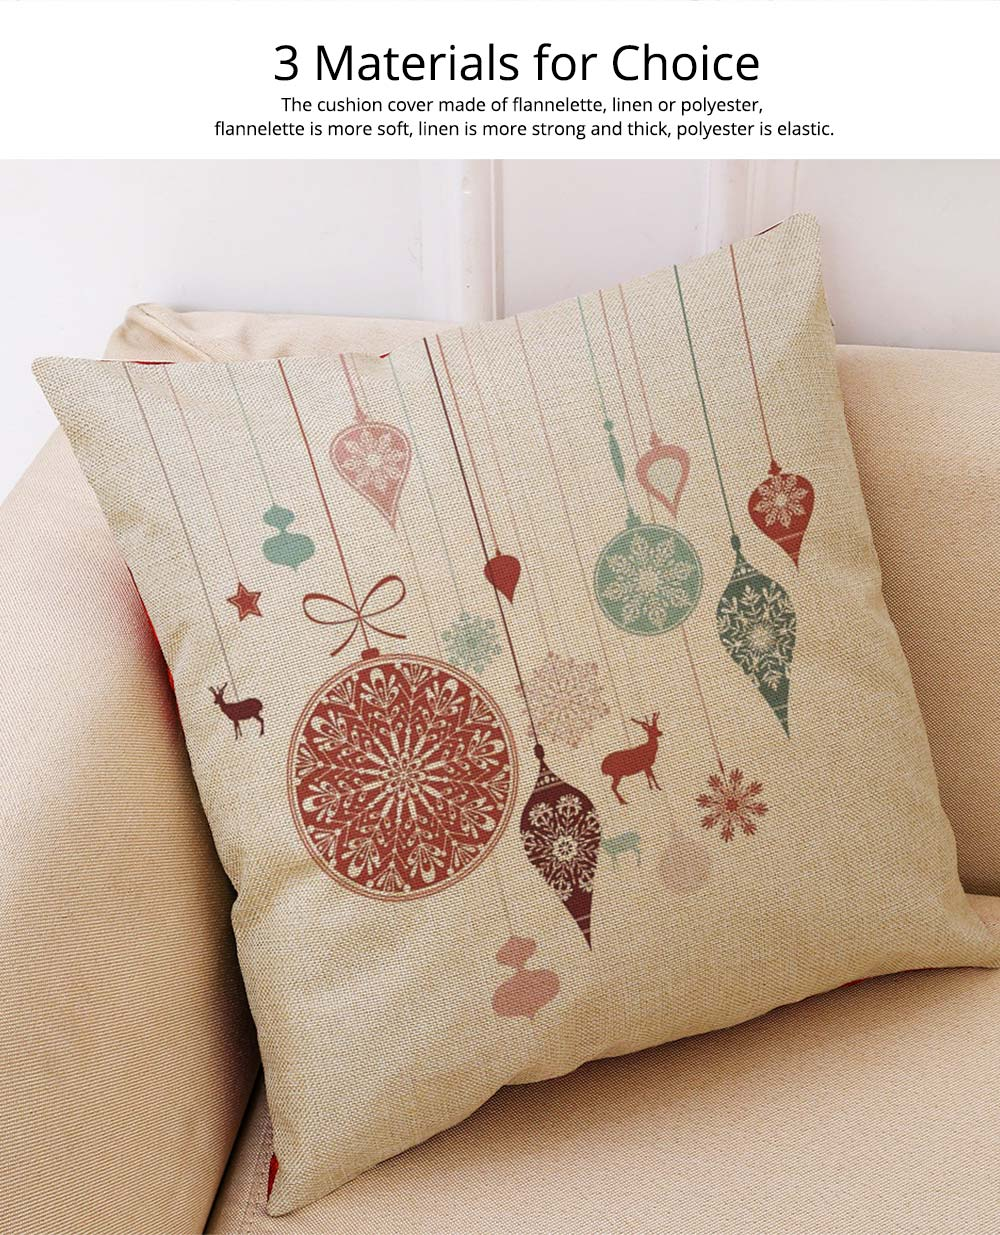 Flannelette Linen Polyester Pillow Case, ew Arrival Christmas Series Home Decoration Cushion Cover 8